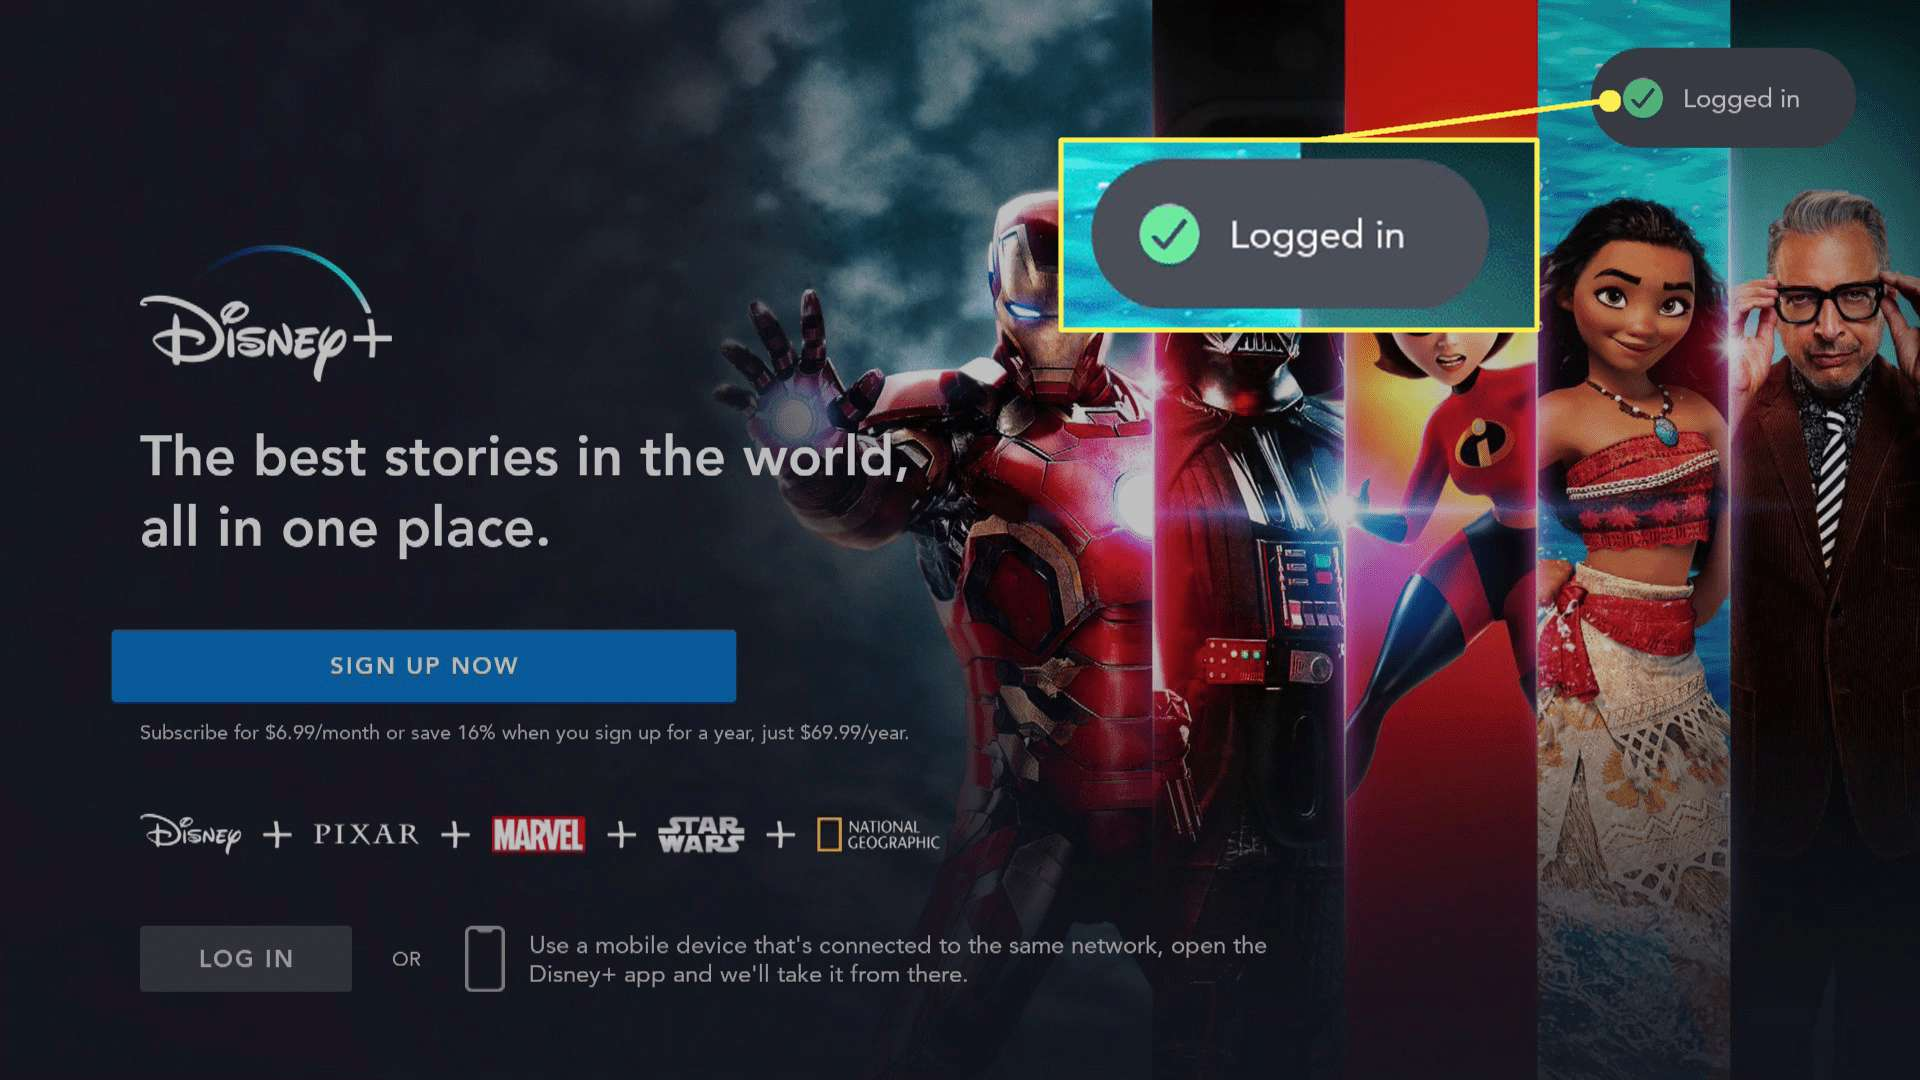 Disney Plus logged in on Fire TV with logged in message highlighted